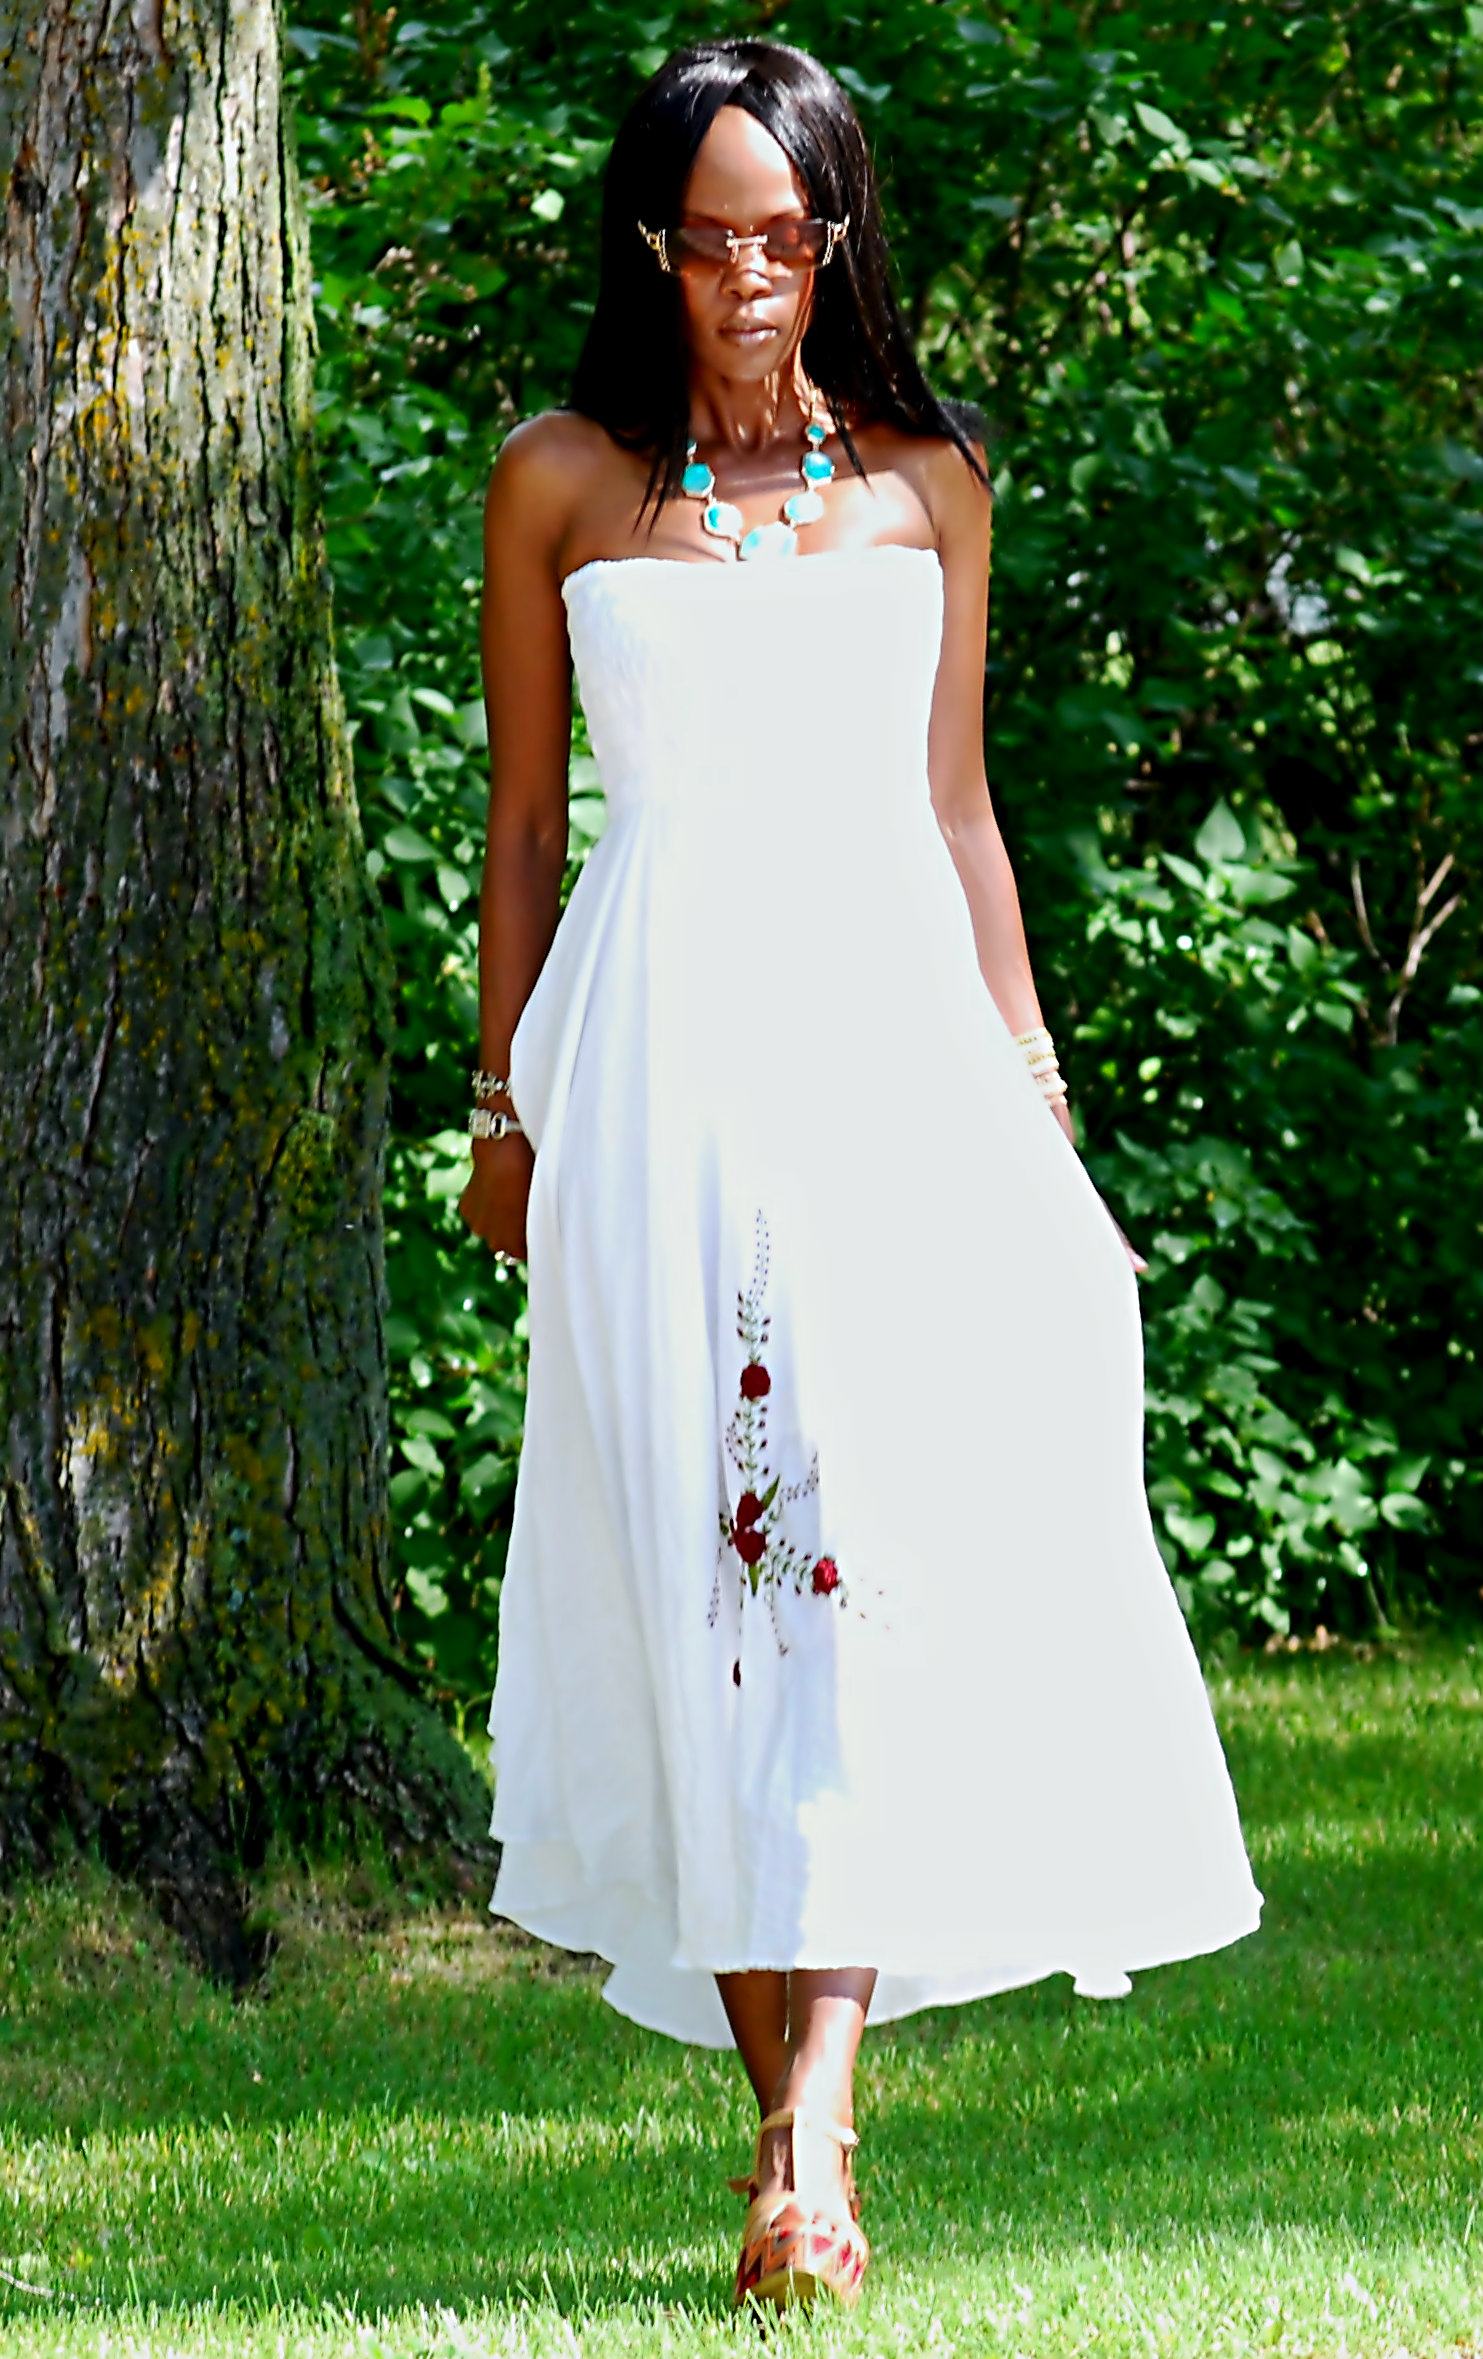 Outfit Of The Day: Summer Maxi Dress